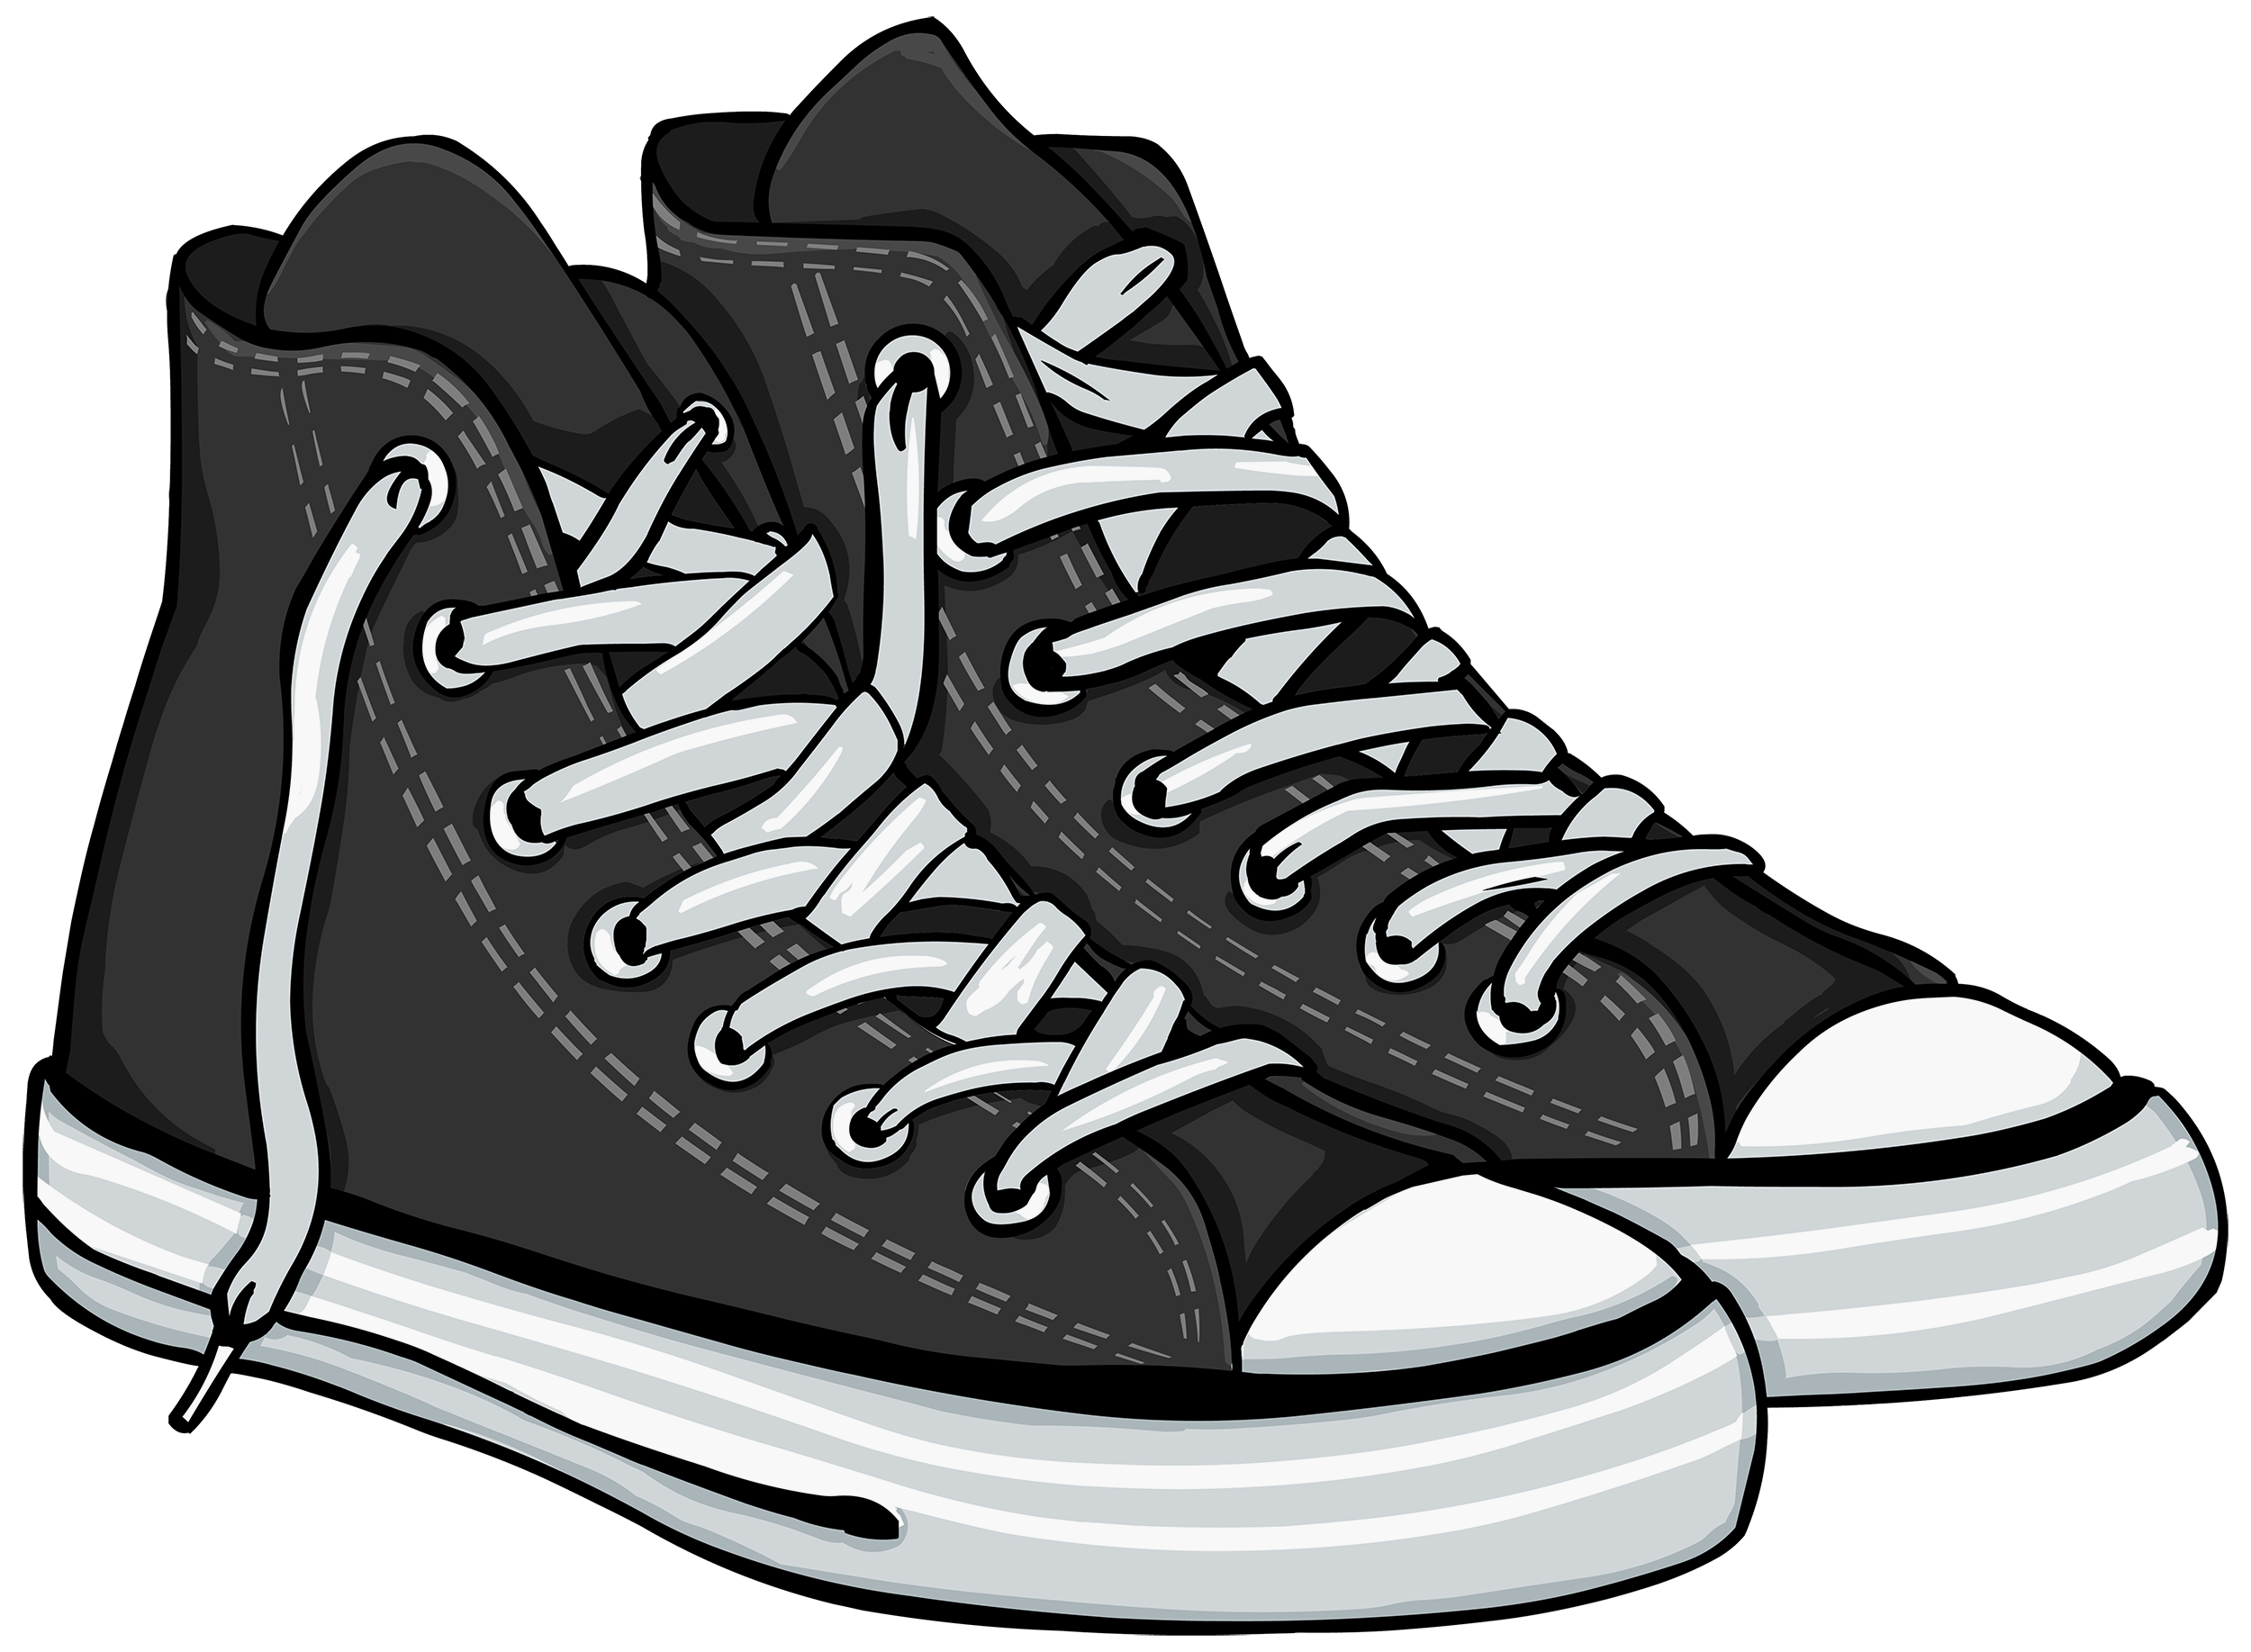 Tennis shoes black and. Clipart socks sort